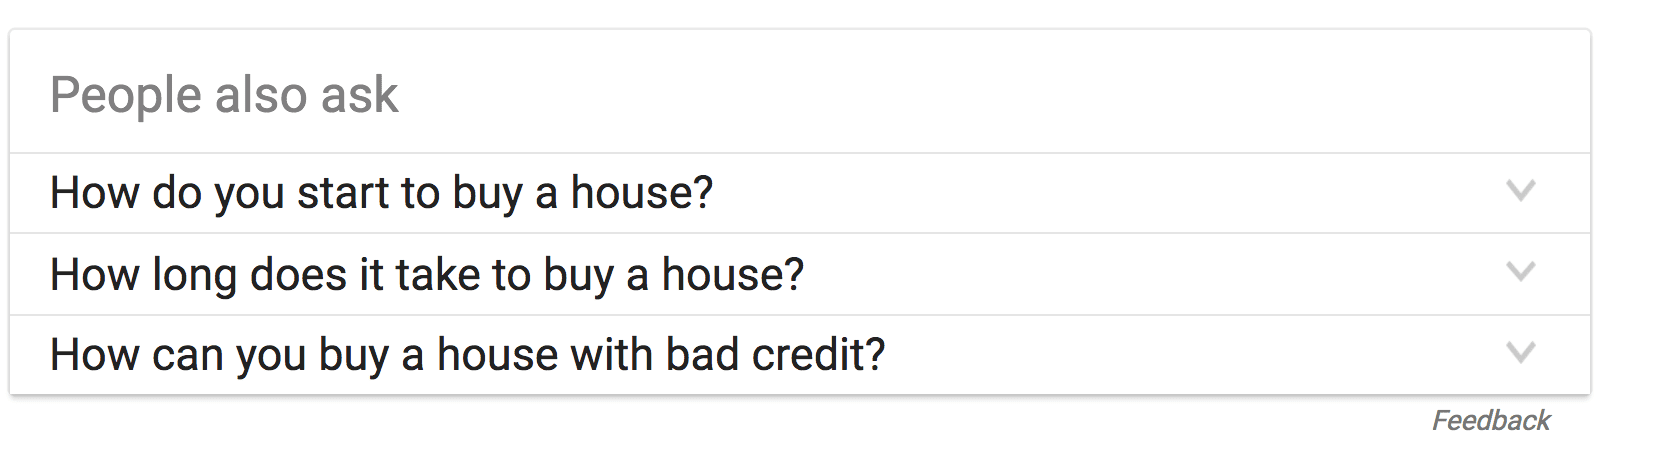 "Sample of Google SERP ""People also ask"""